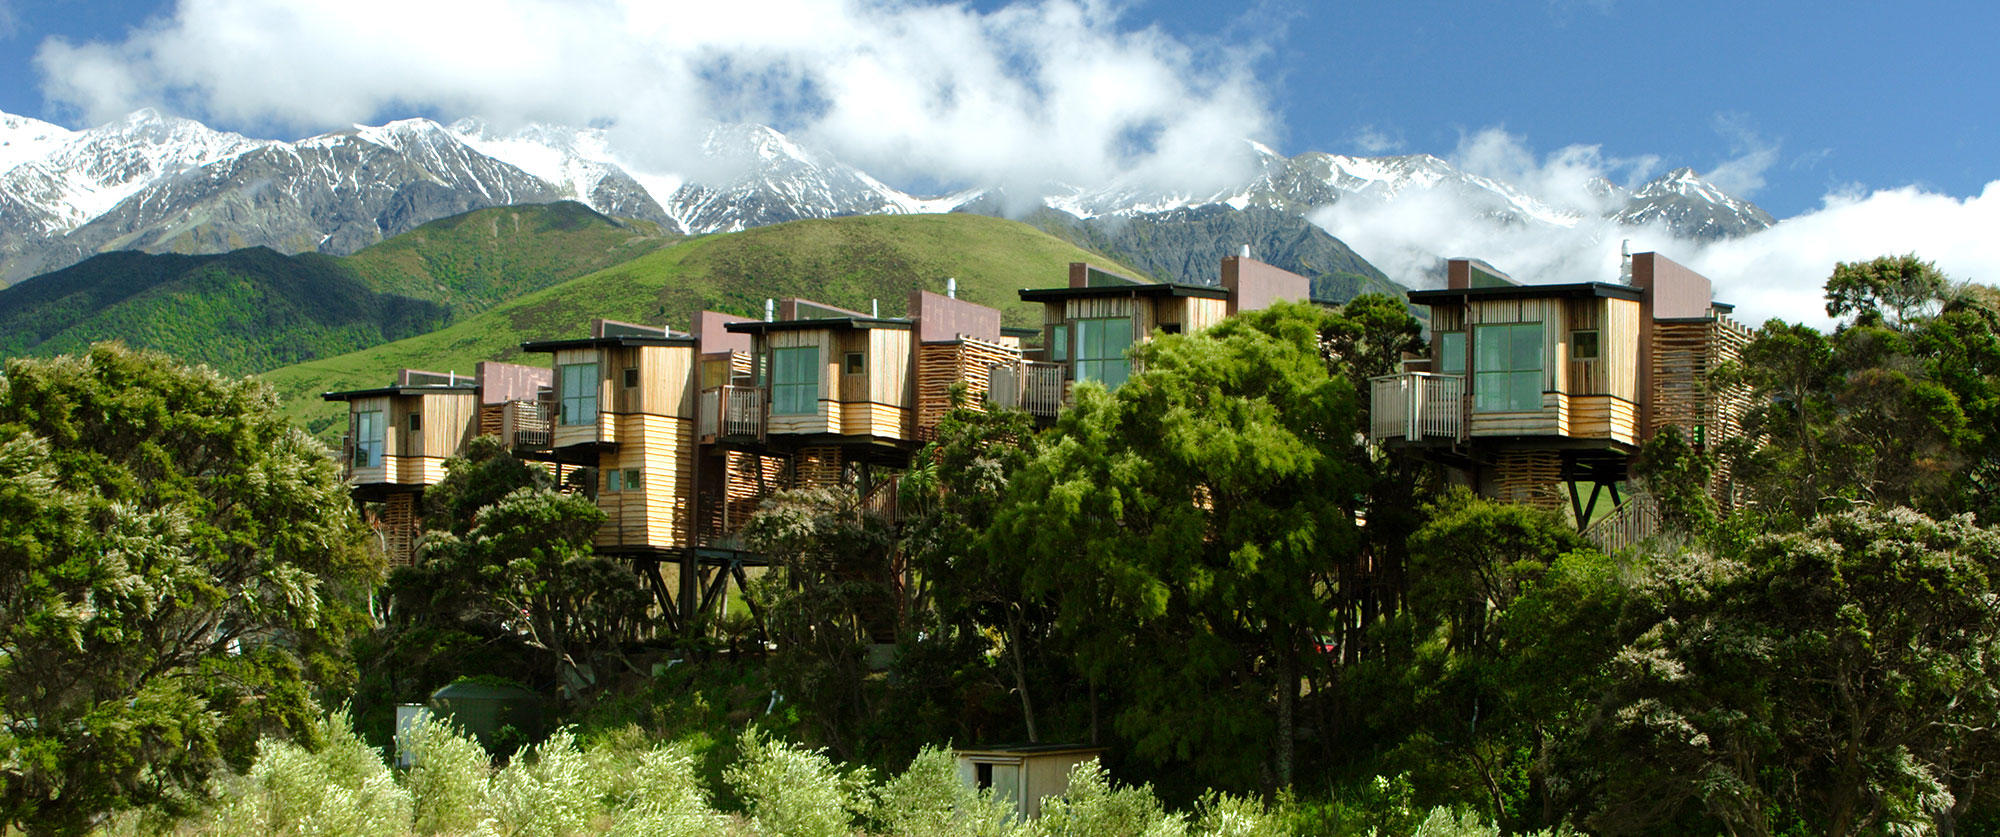 New Zealand Luxury Vacations - Hapuku Lodge Kaikoura